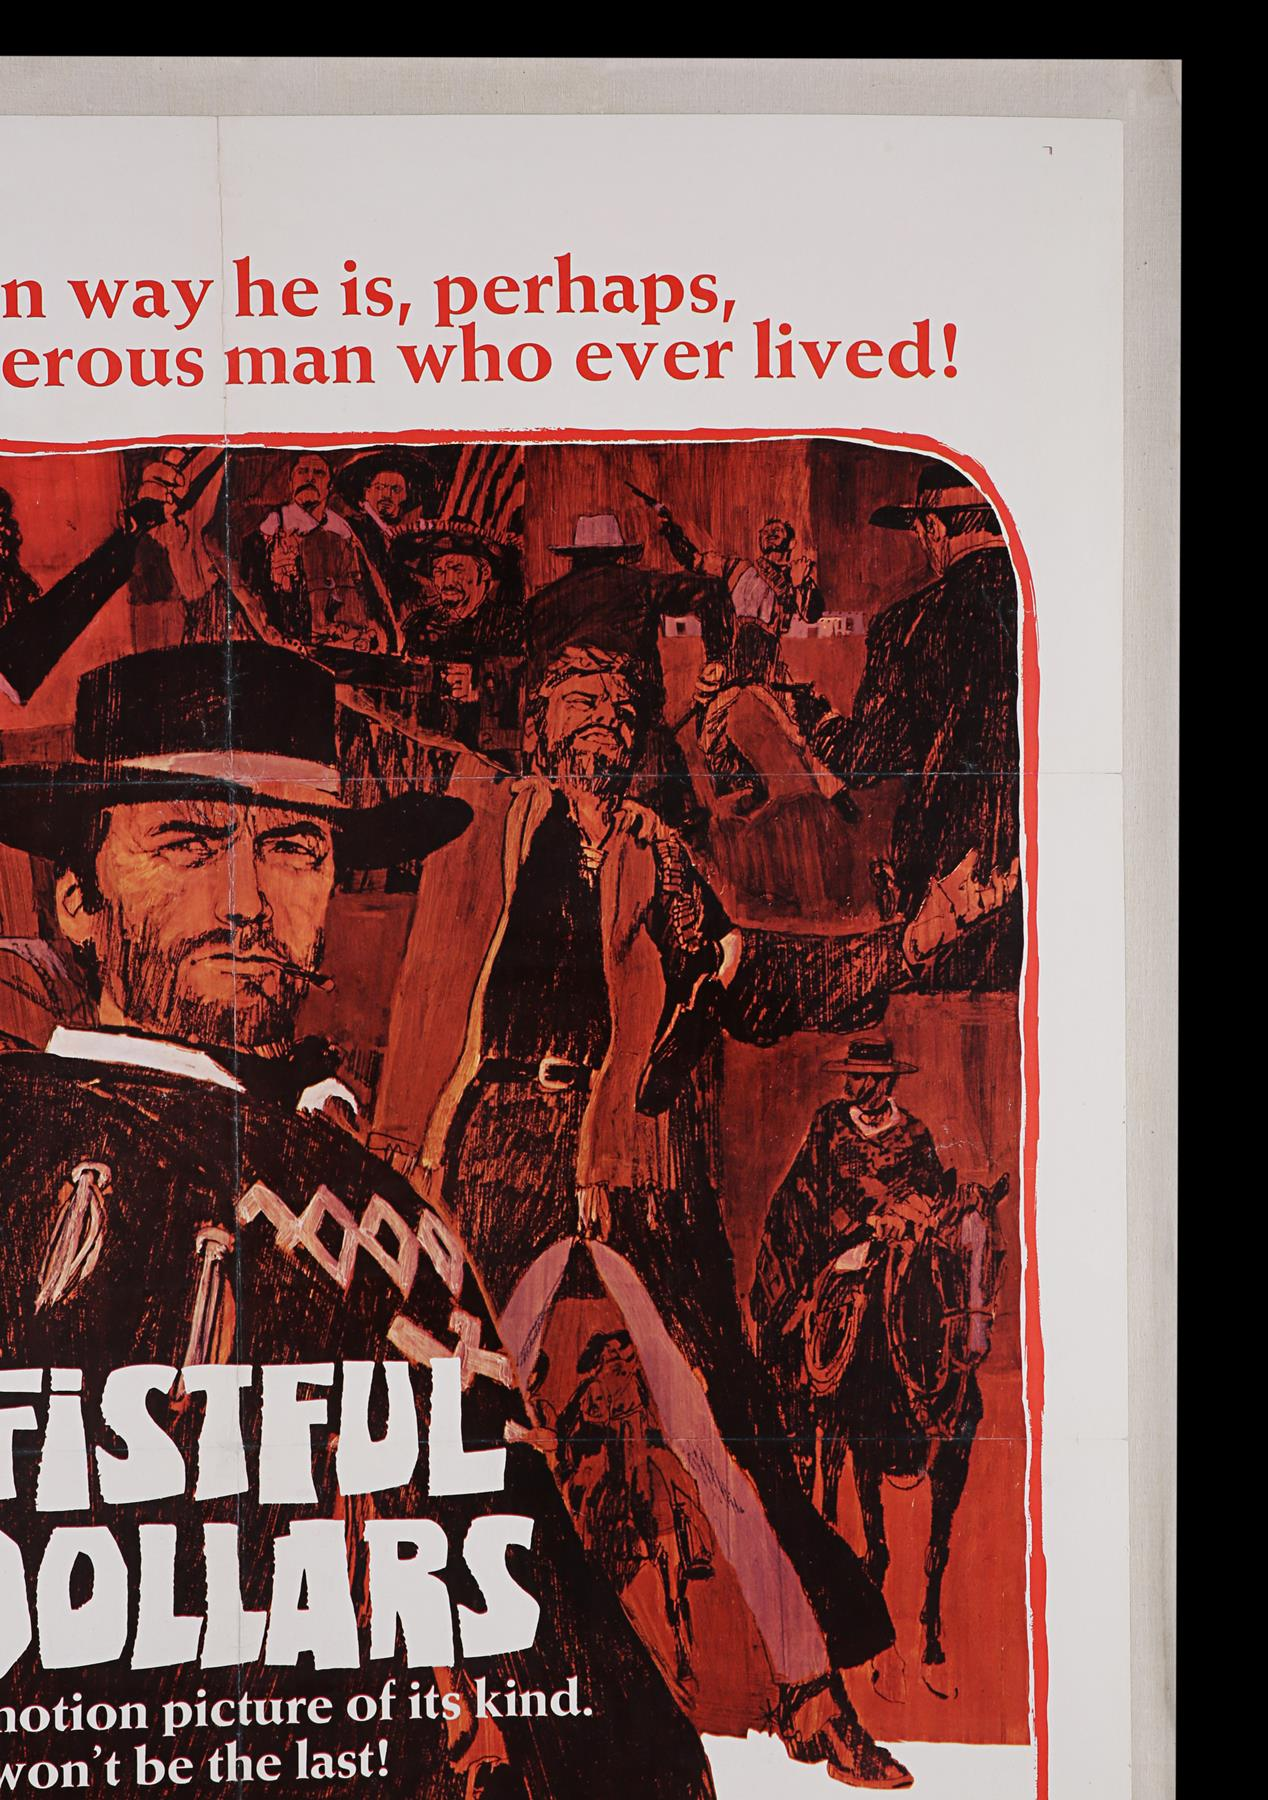 A FISTFUL OF DOLLARS (1967) - US One-Sheet, 1967 - Image 3 of 5